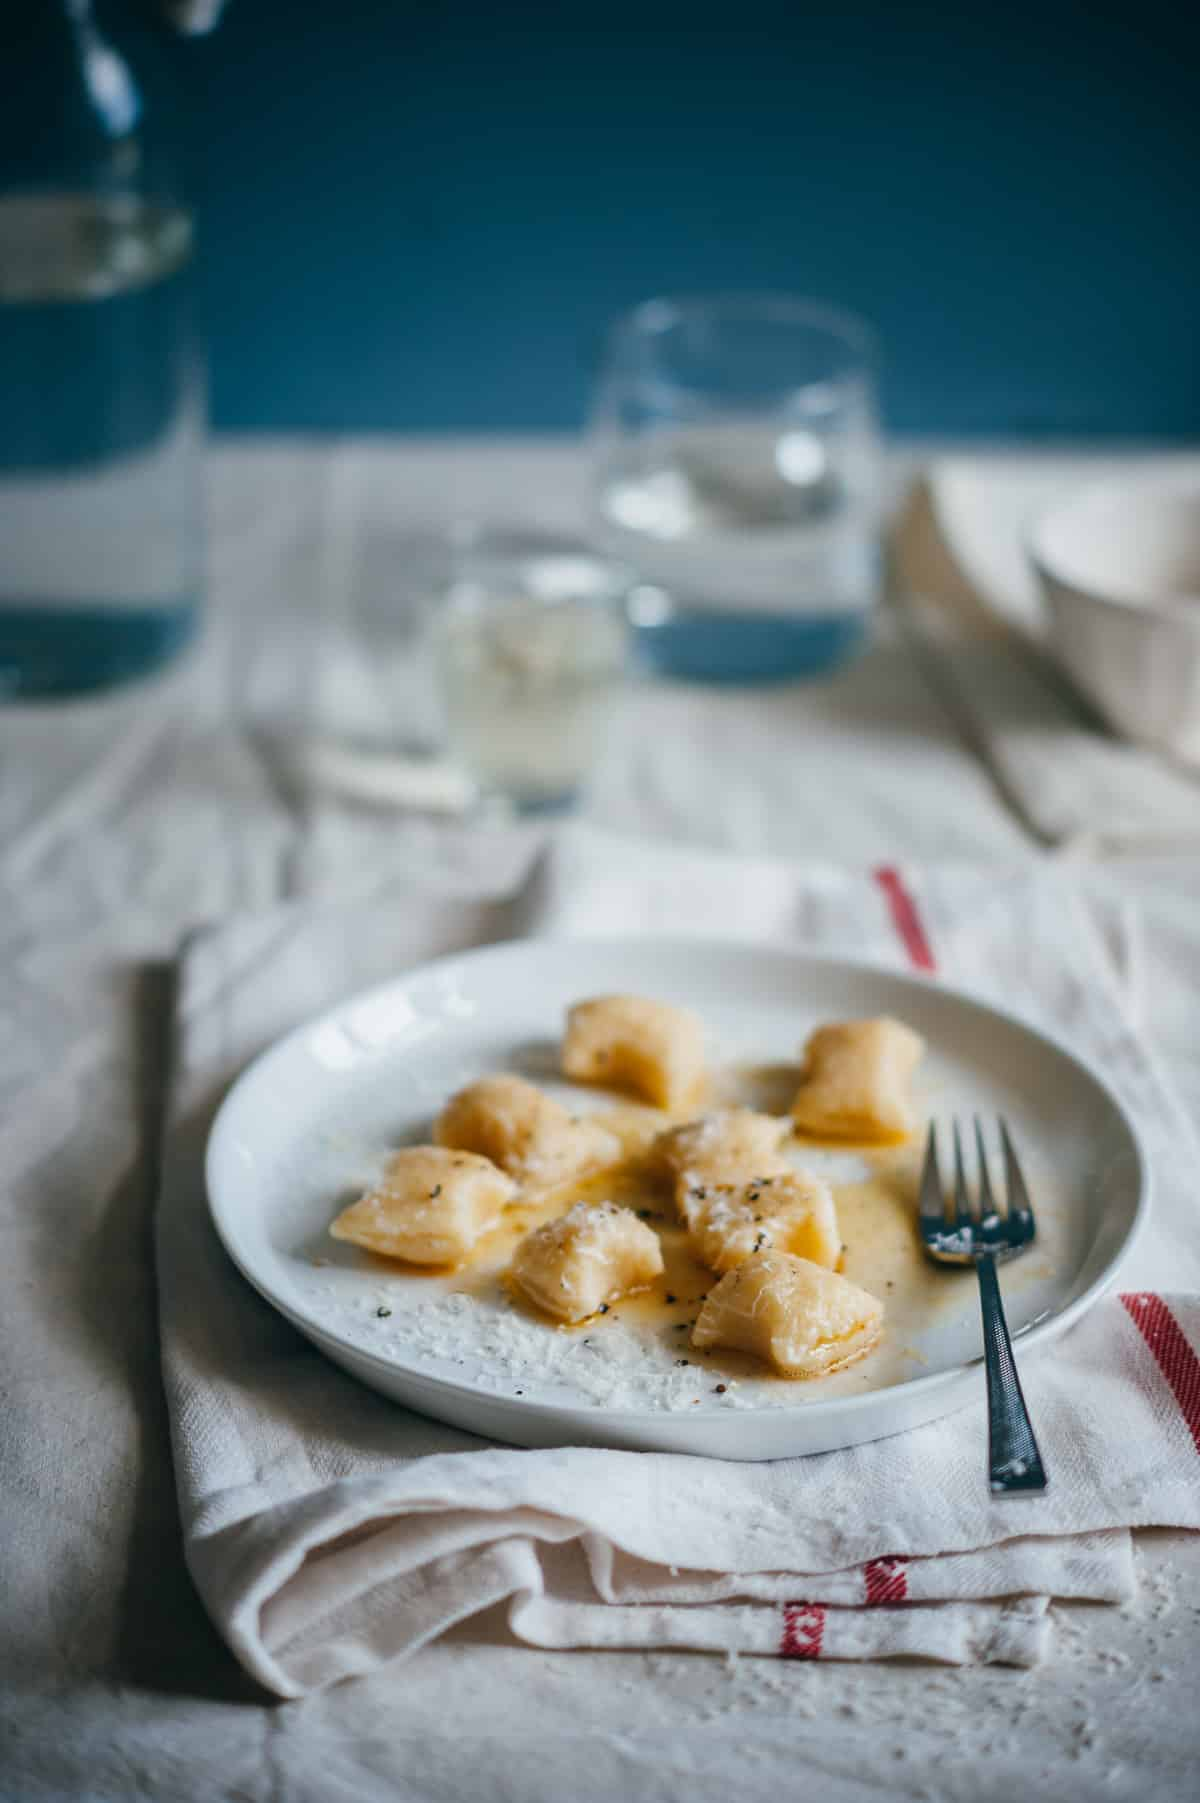 gnocchi made from ricotta served on a white plate